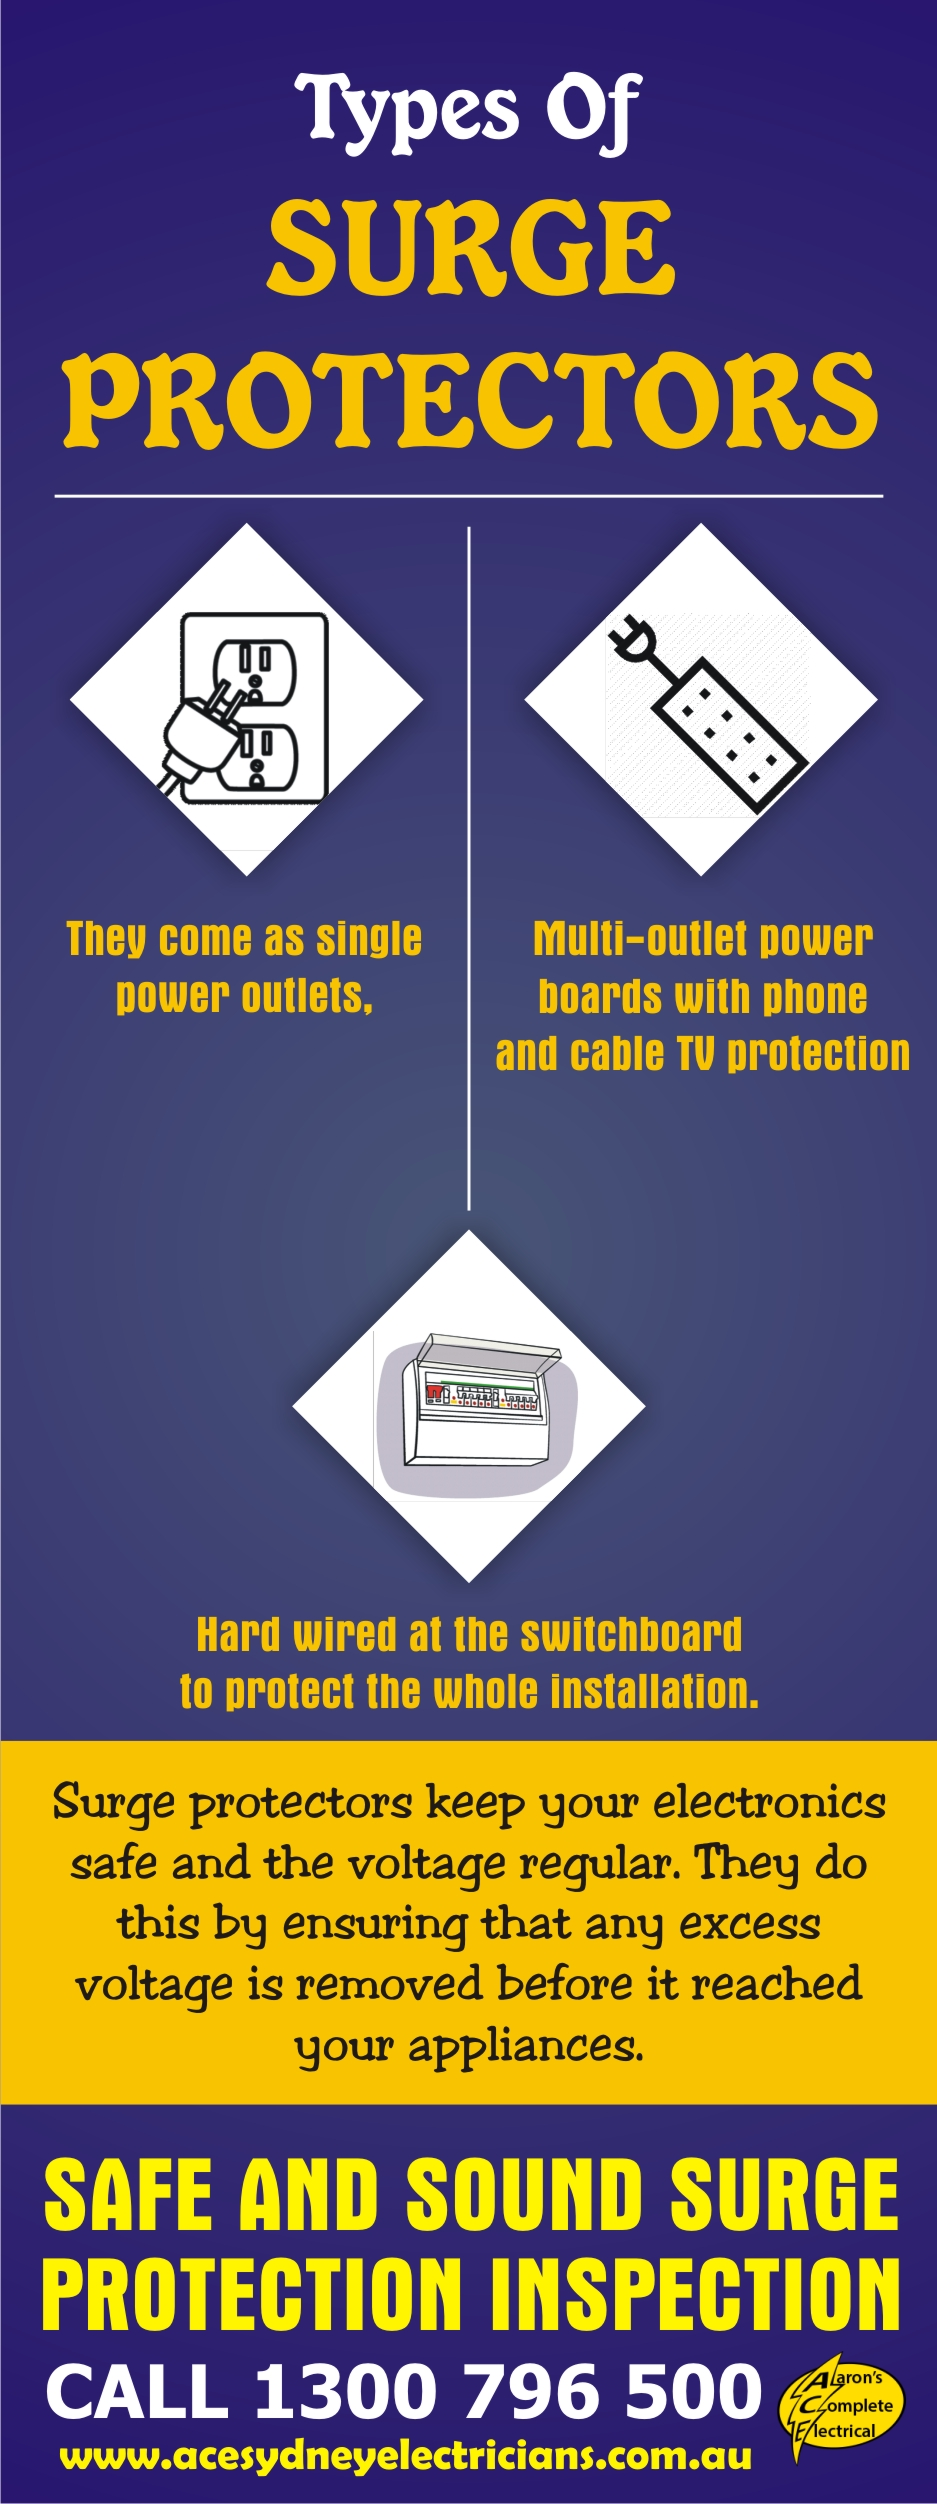 Types of Surge Protectors